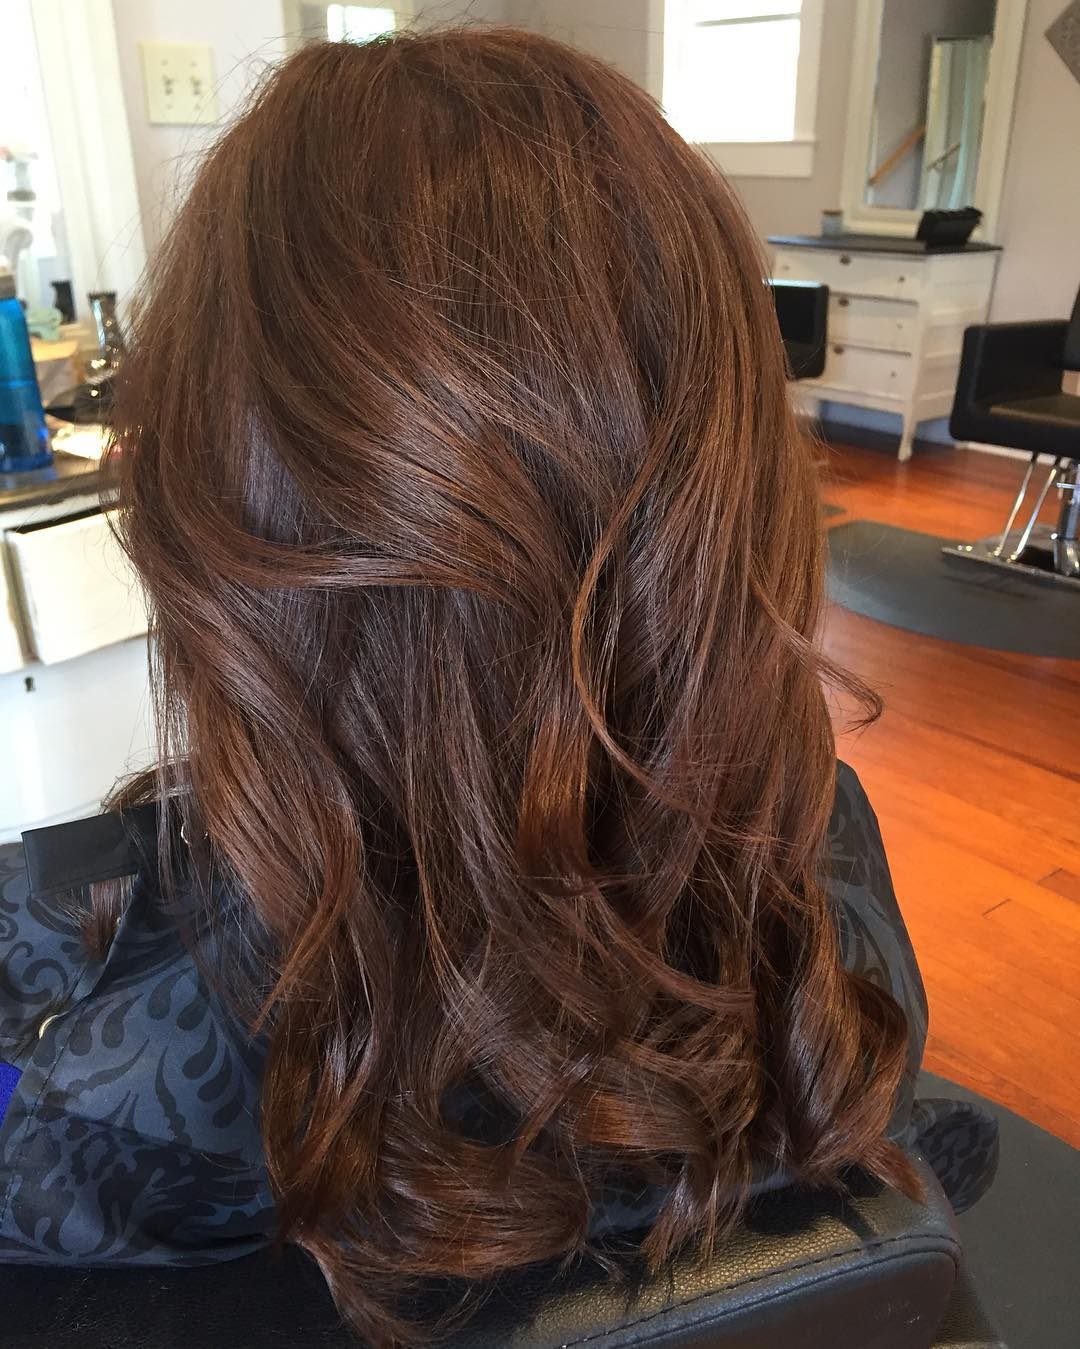 50 Different Shades of Brown Hair — Colors You Can't Resist! - photo#8